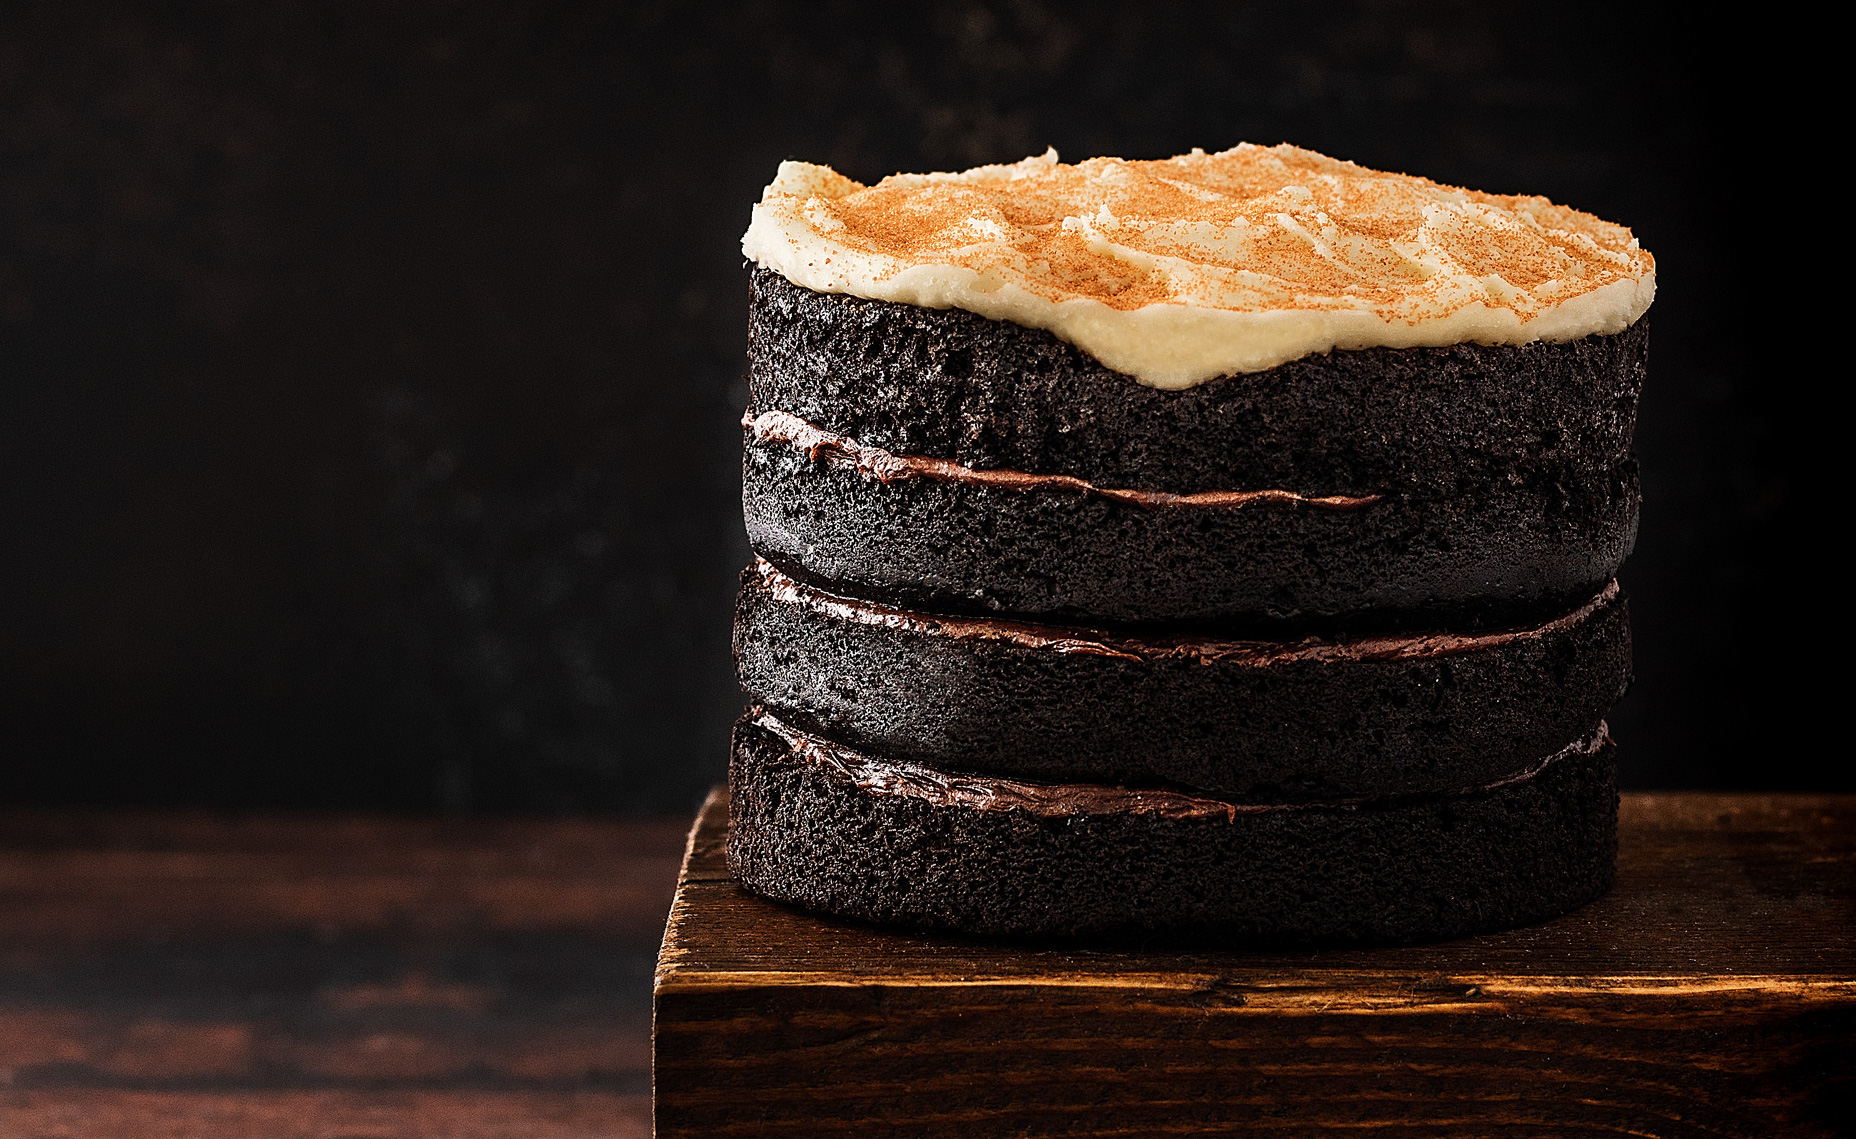 Asda is exclusively selling a four-layered Guinness chocolate cake from next week